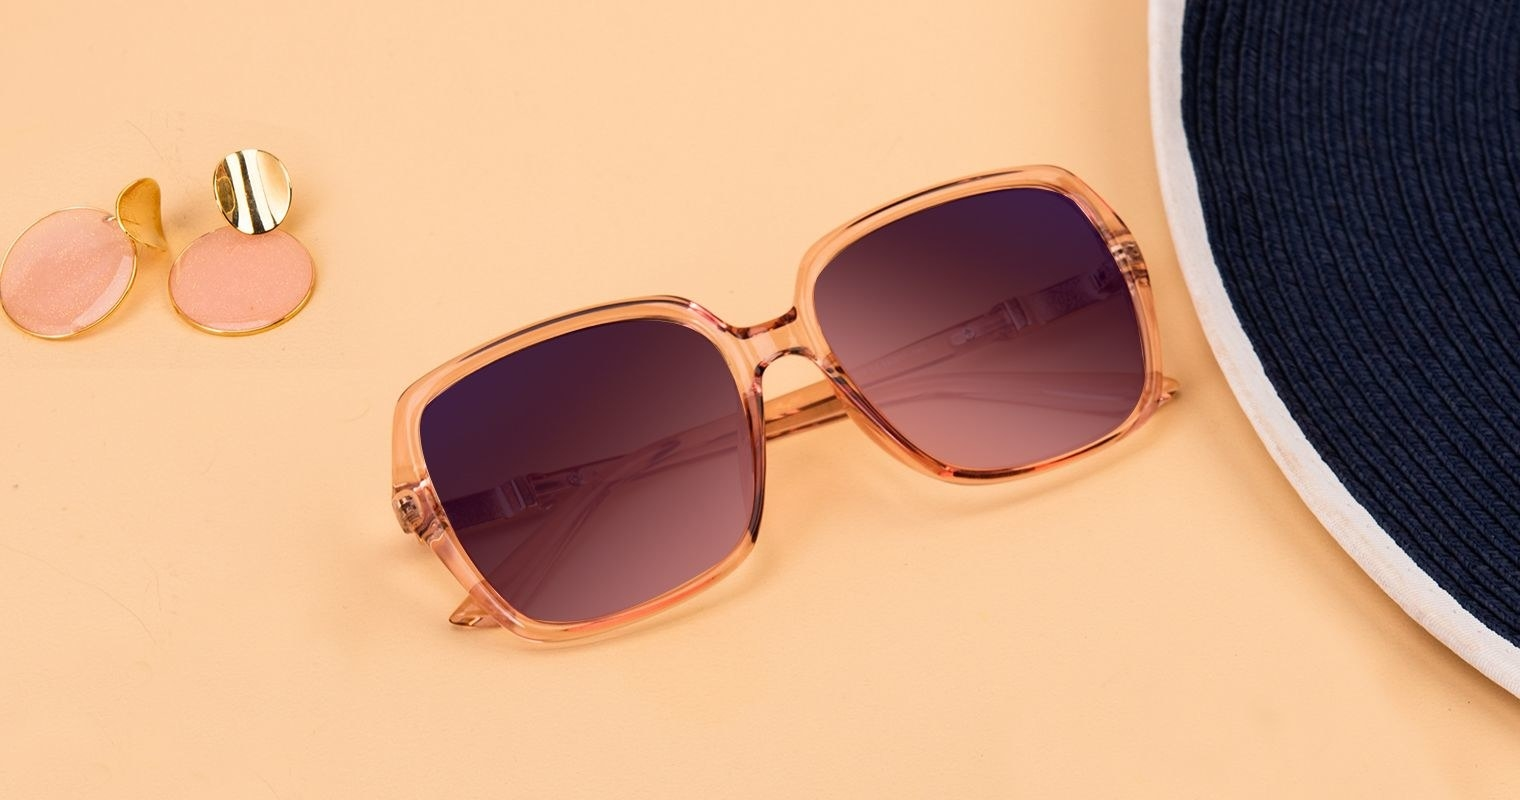 the sunglasses with large lenses and a peach-colored frame